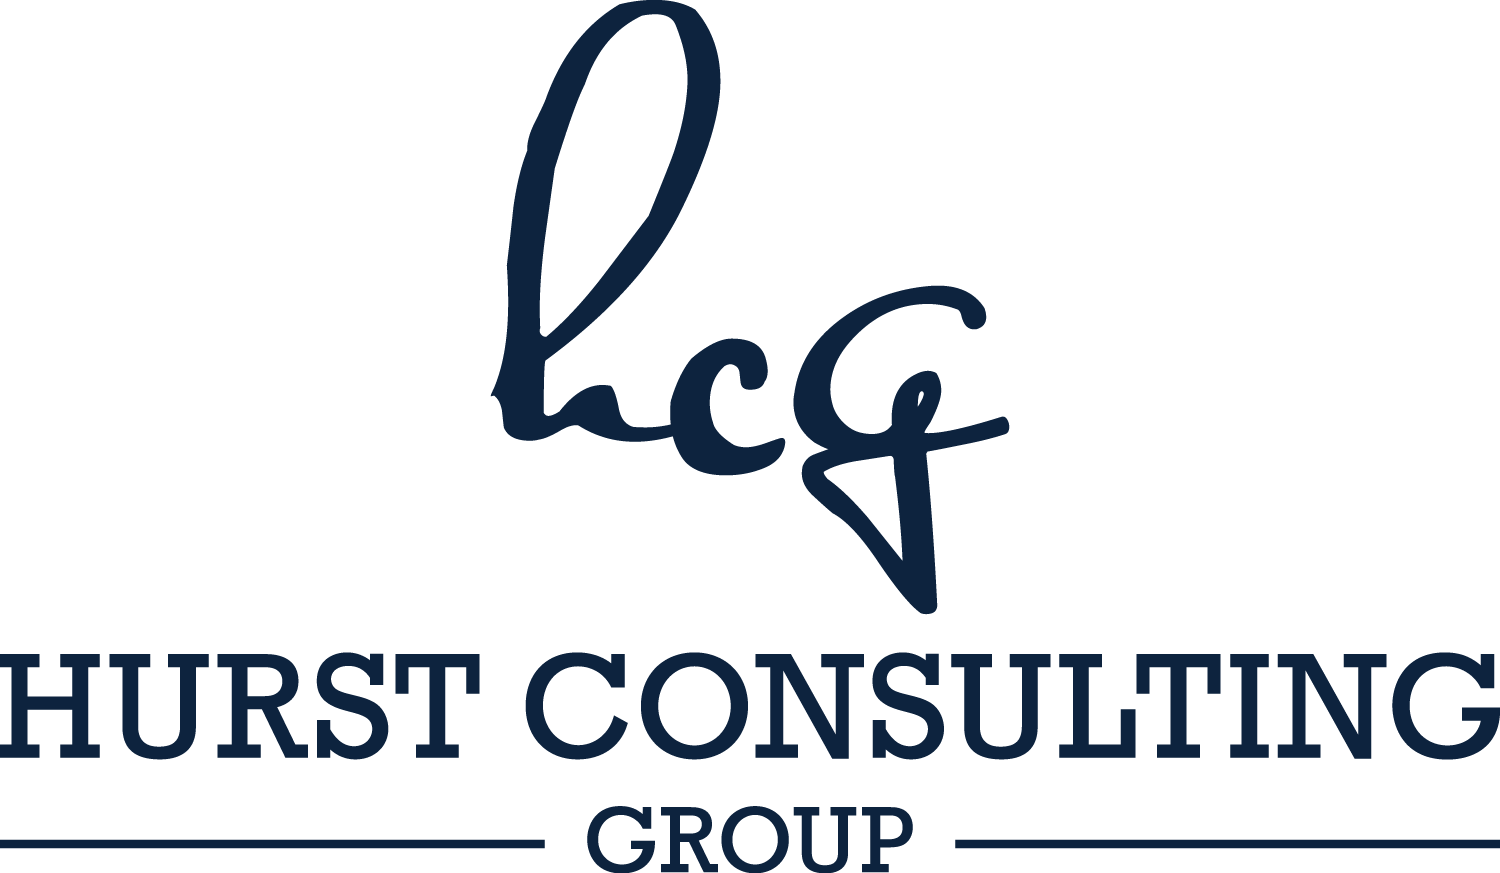 Hurst Consulting Group